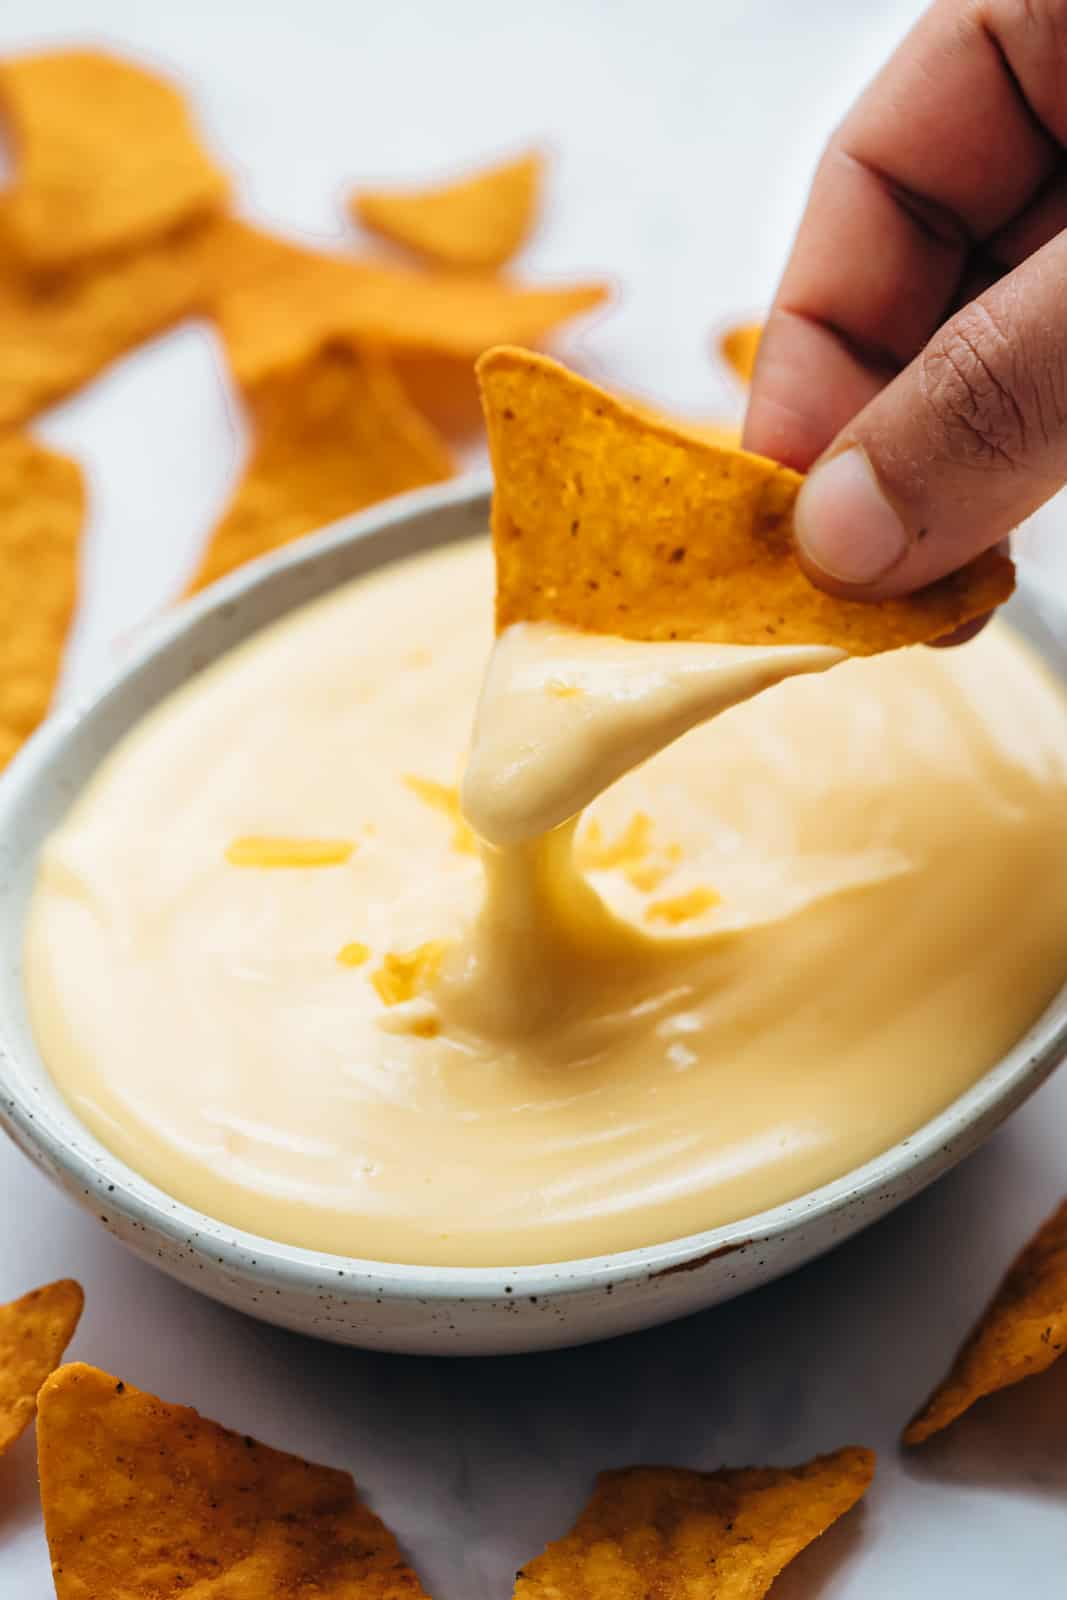 Dipping nacho into cheese sauce